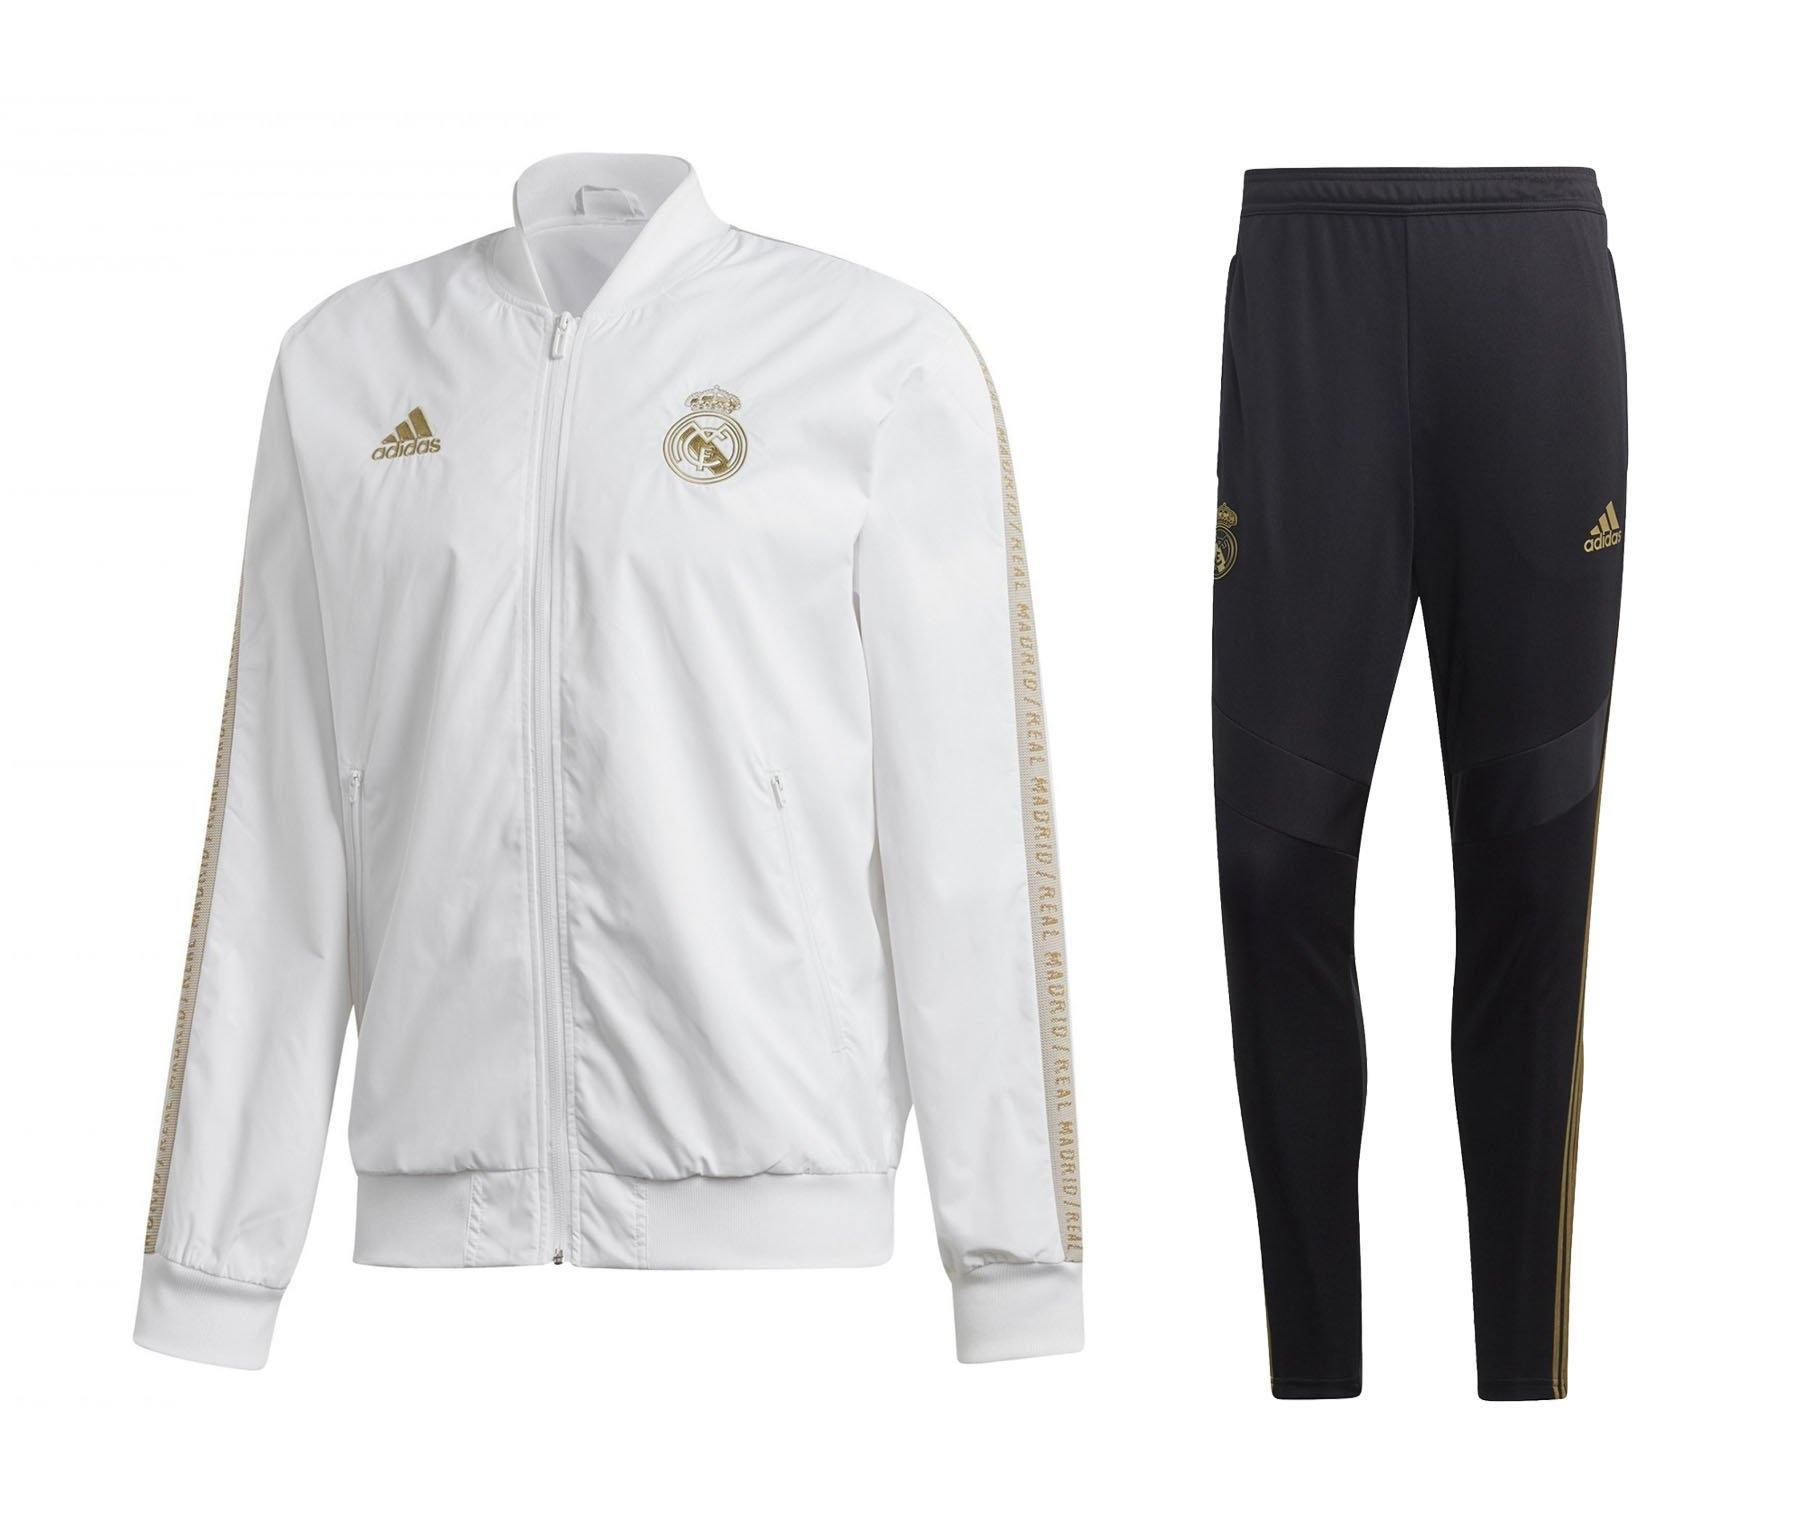 Survetement Real Madrid CF Adidas Homme 2019/20 Foot Online freeshipping - Foot Online